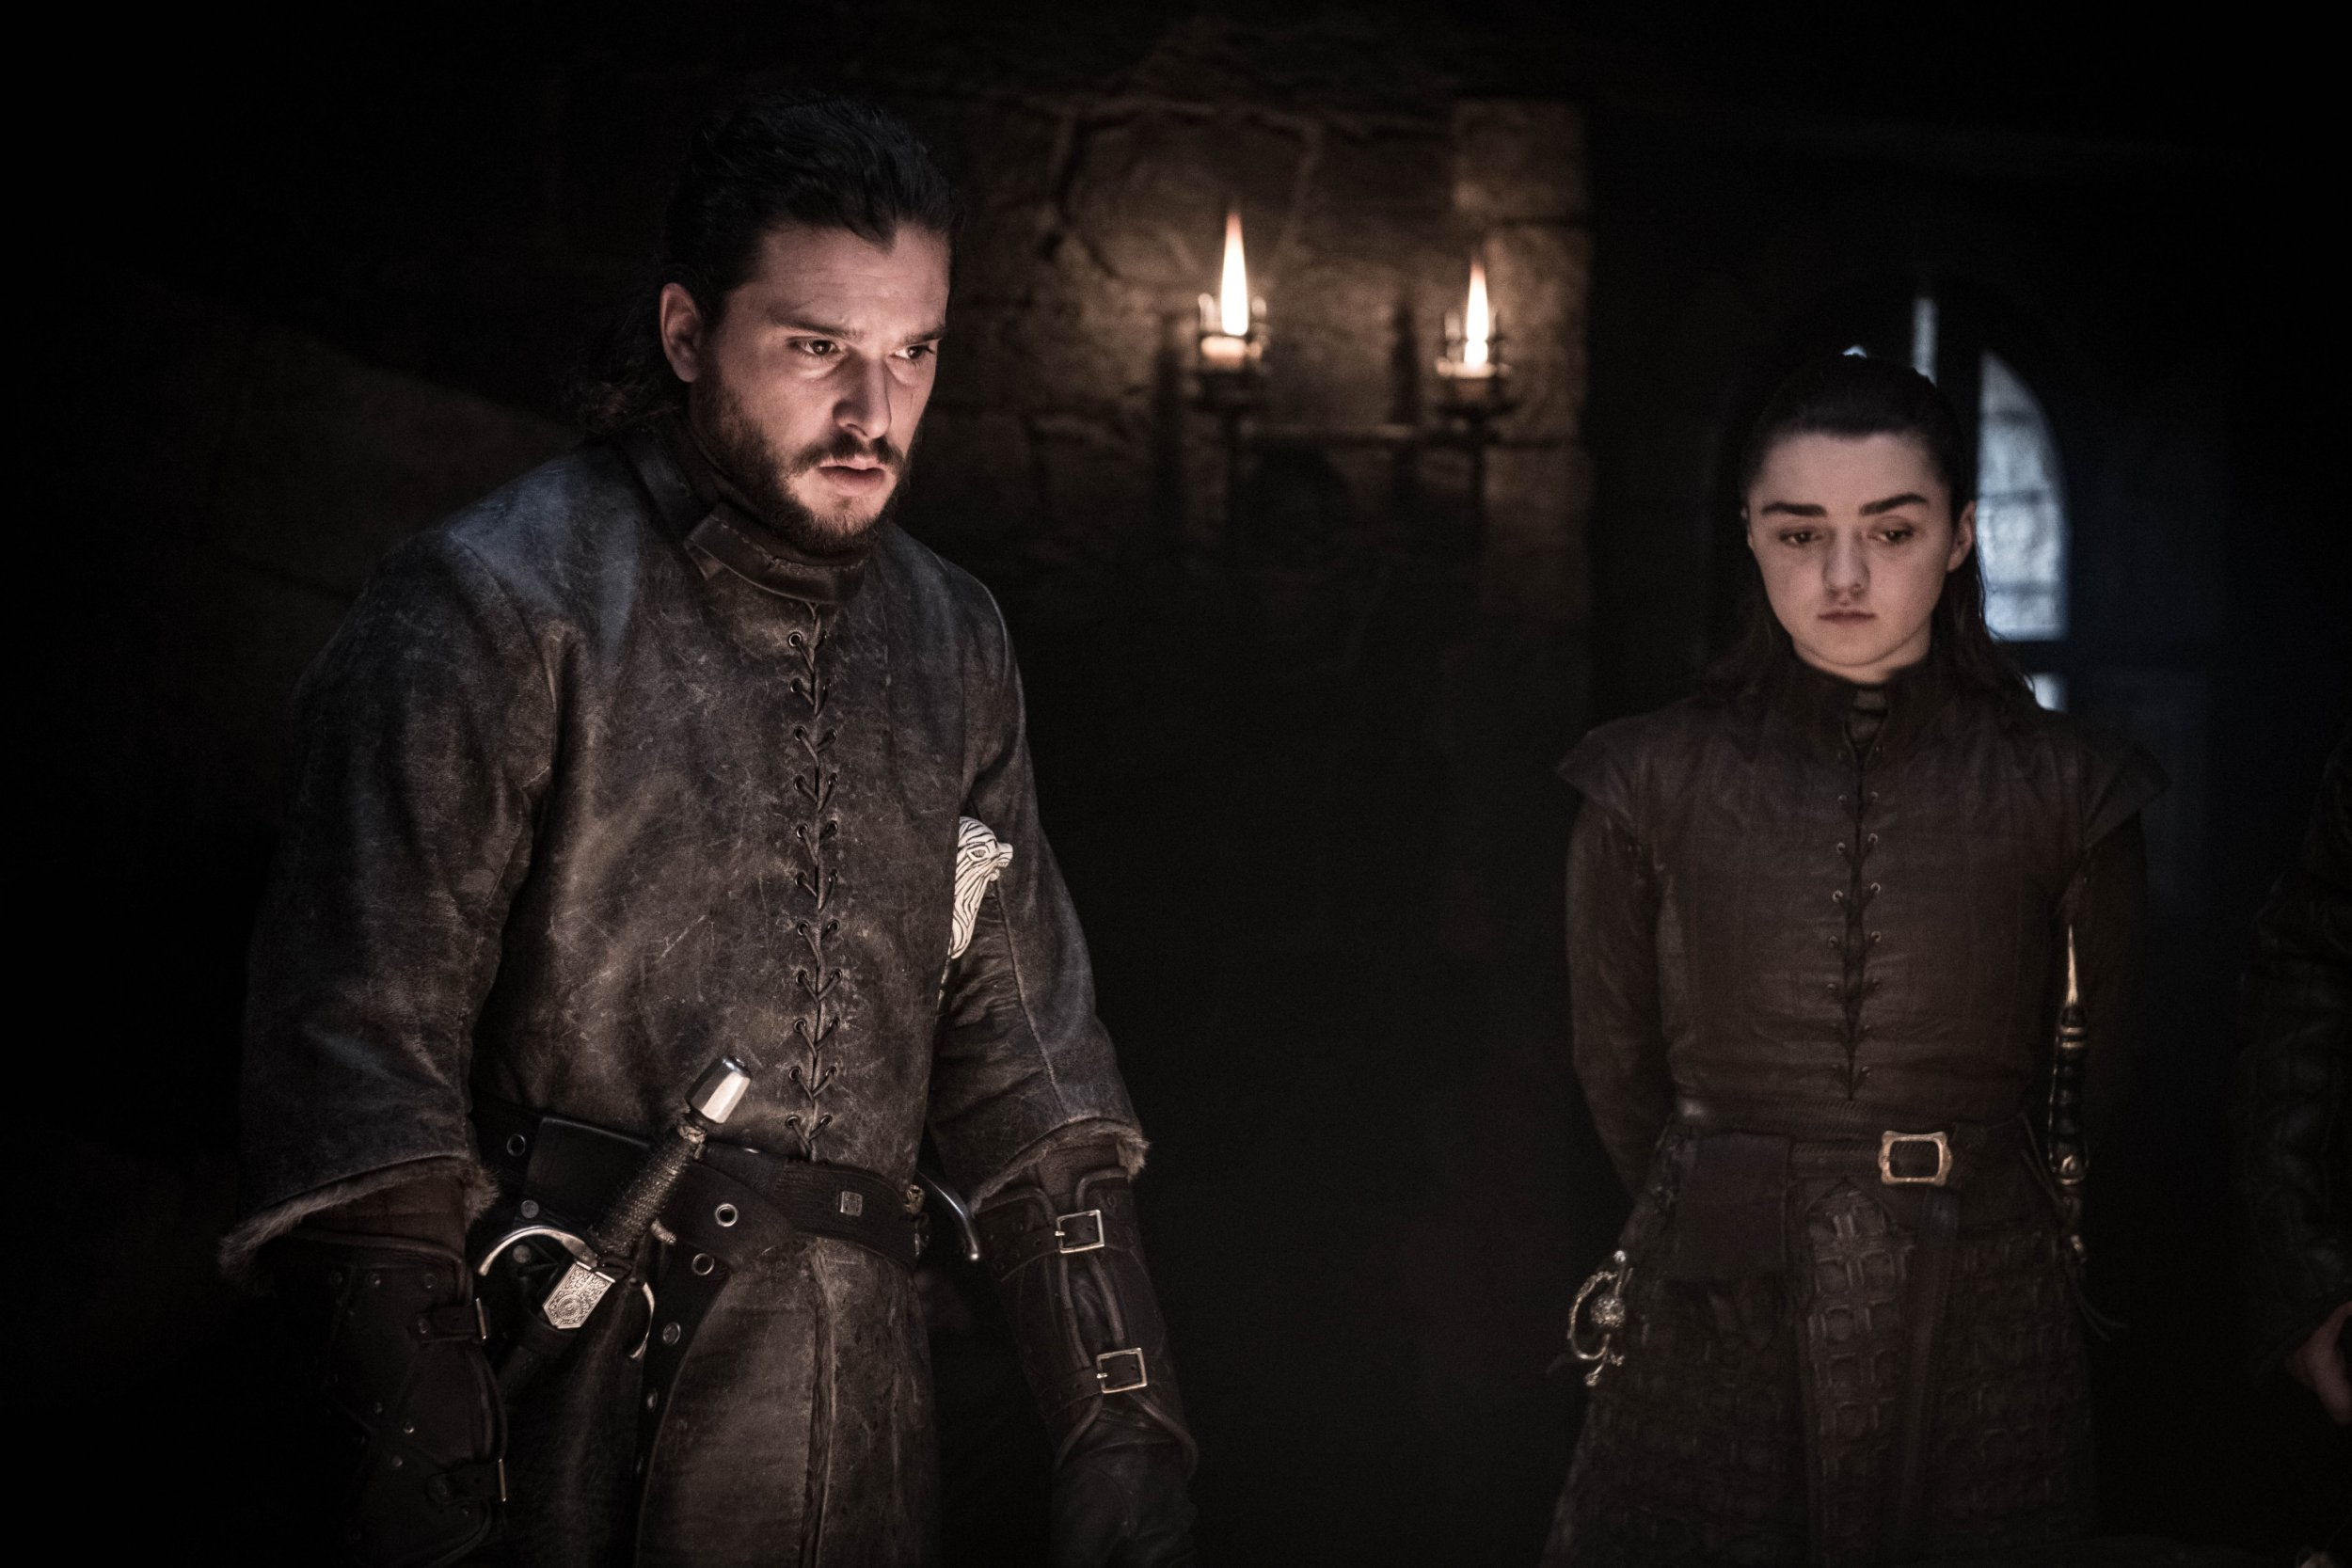 Game Of Thrones season 8 episode 3 spoilers, trailer and how to watch it before Monday night